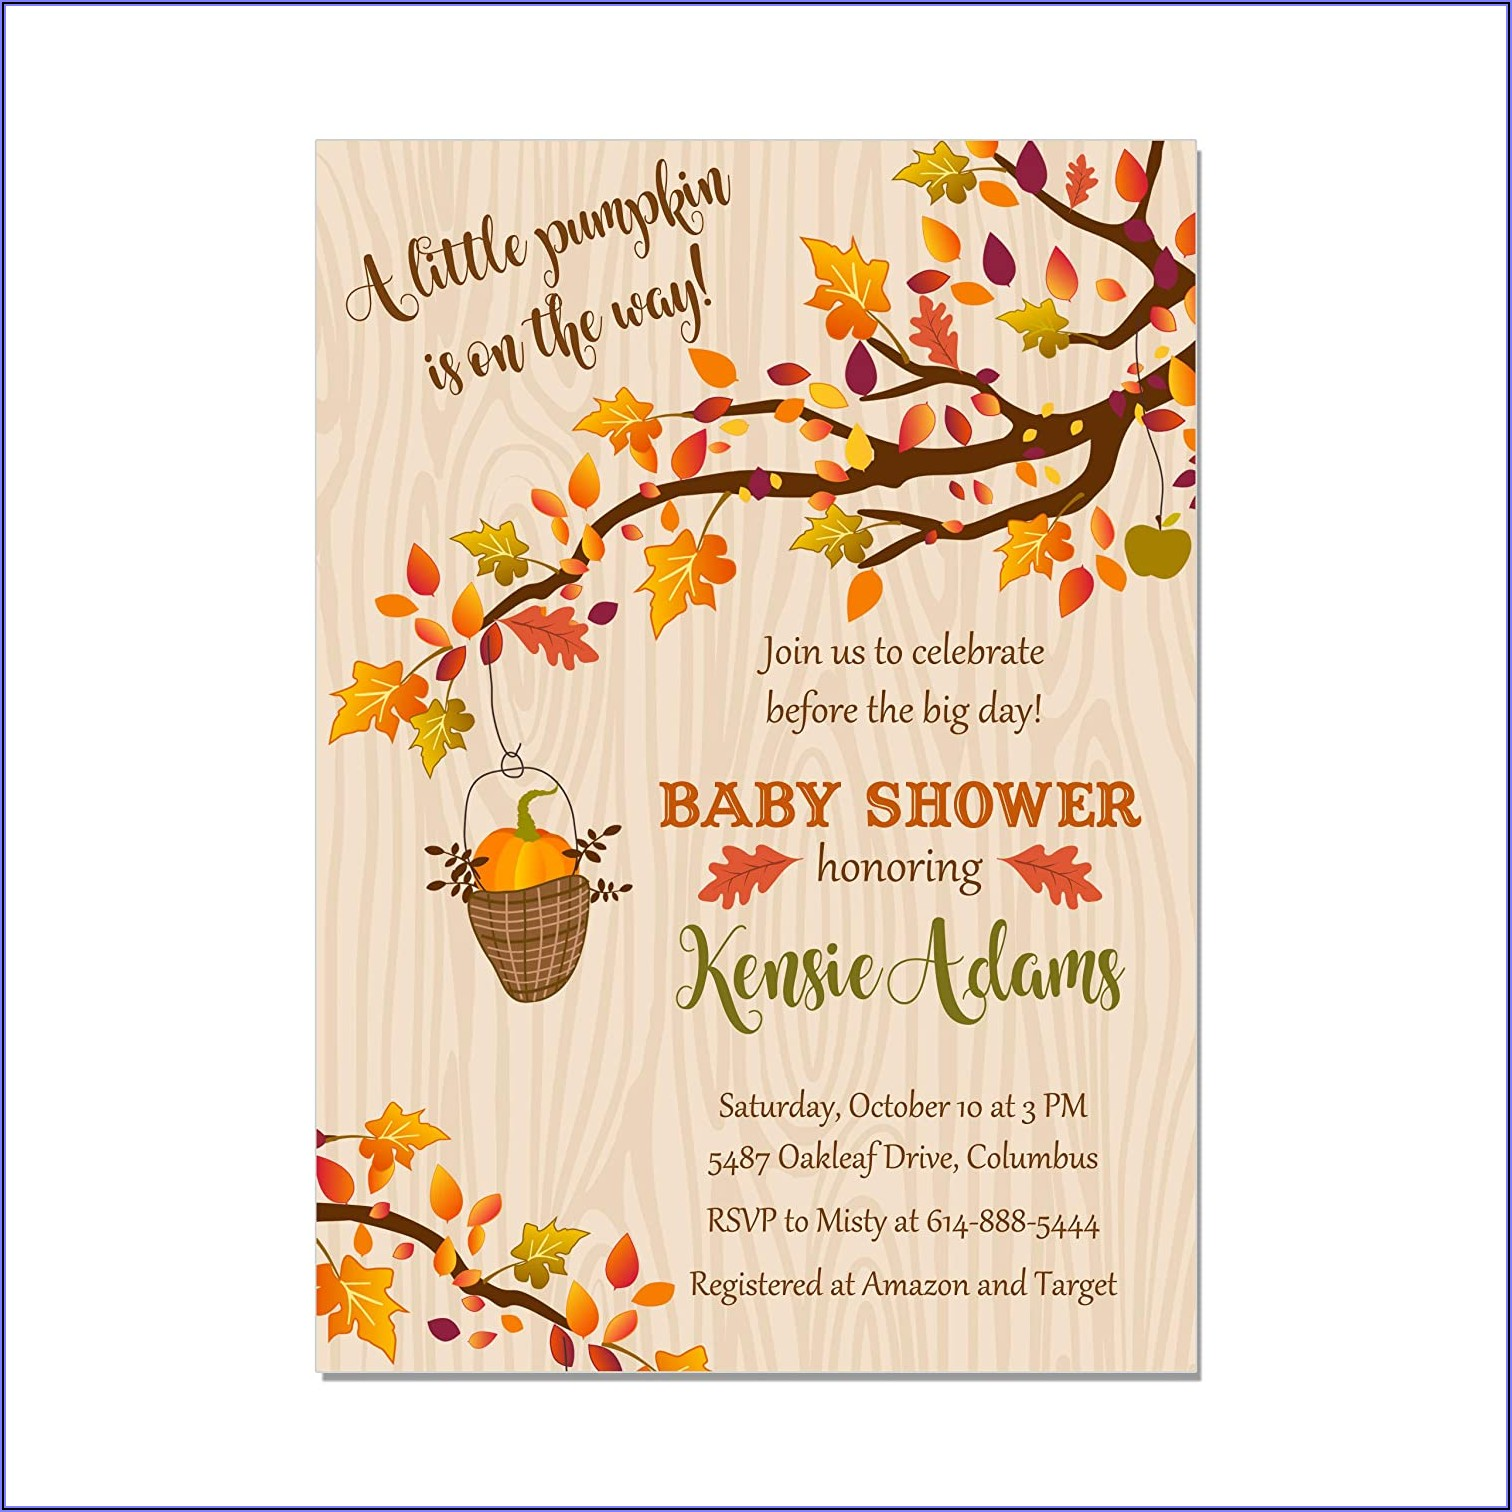 5x7 Invitation Envelopes Target